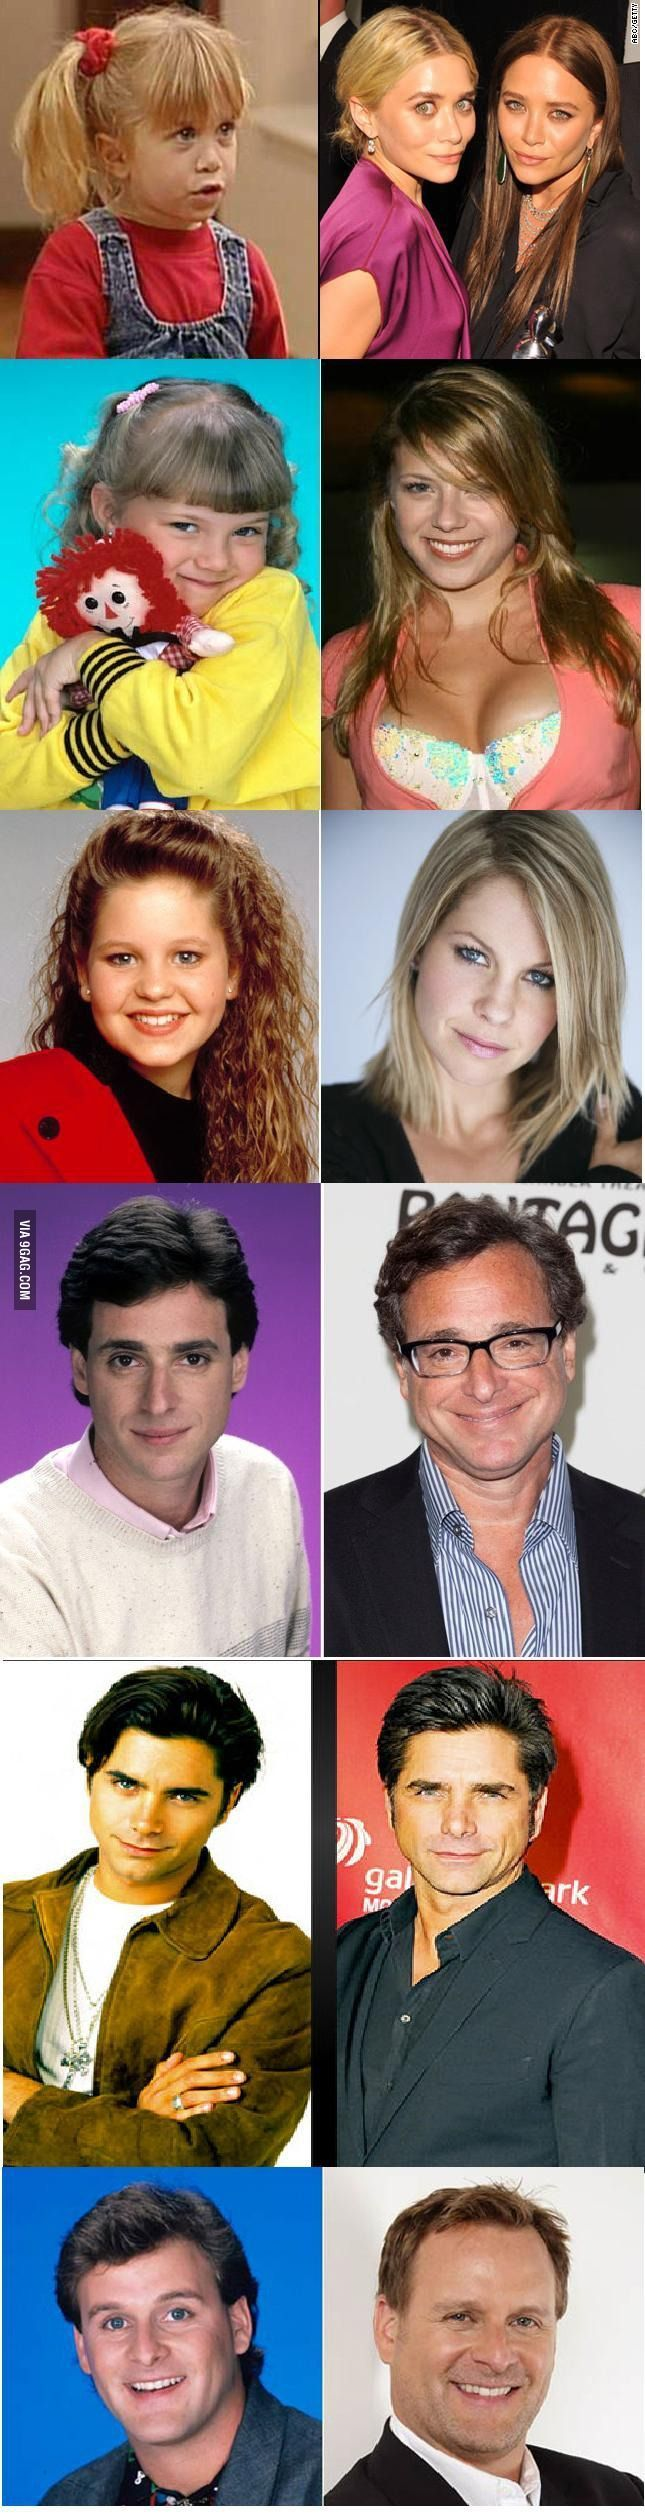 Full house – then and now...I REALLY MISS FULL HOUSE :(